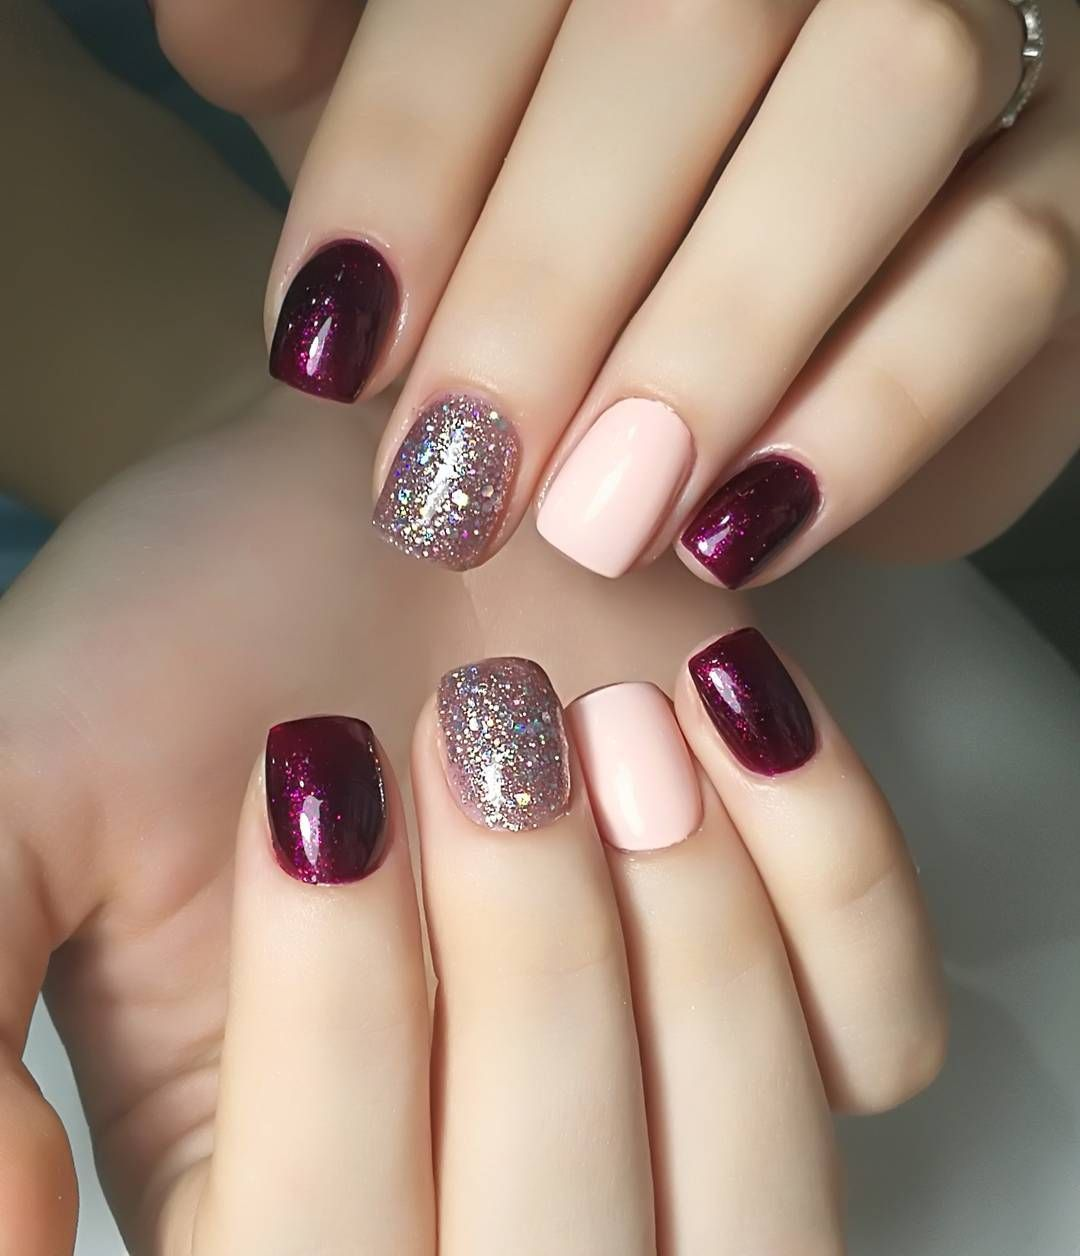 15 Trending Nail Designs That You Will Love! - Best Nail ...